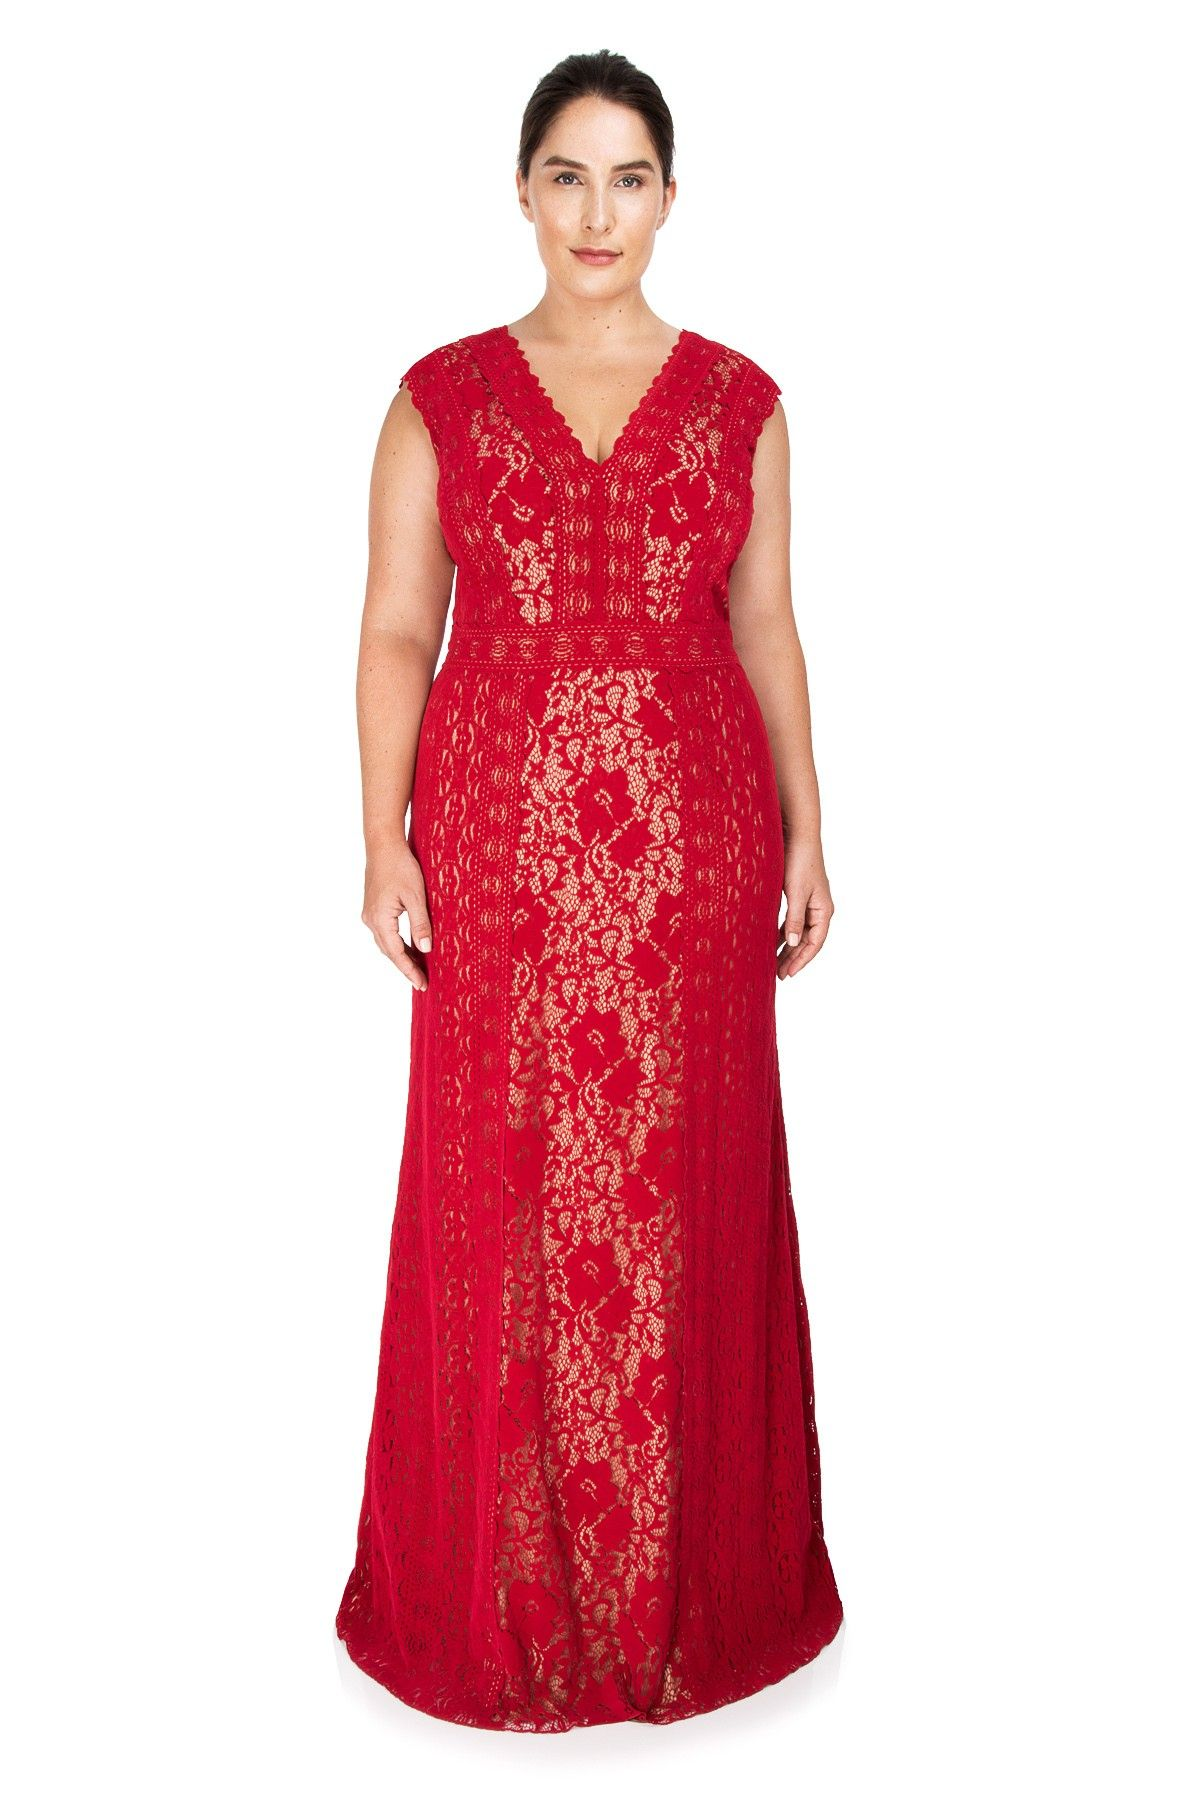 Plus Size Red After 5 Dresses | Saddha